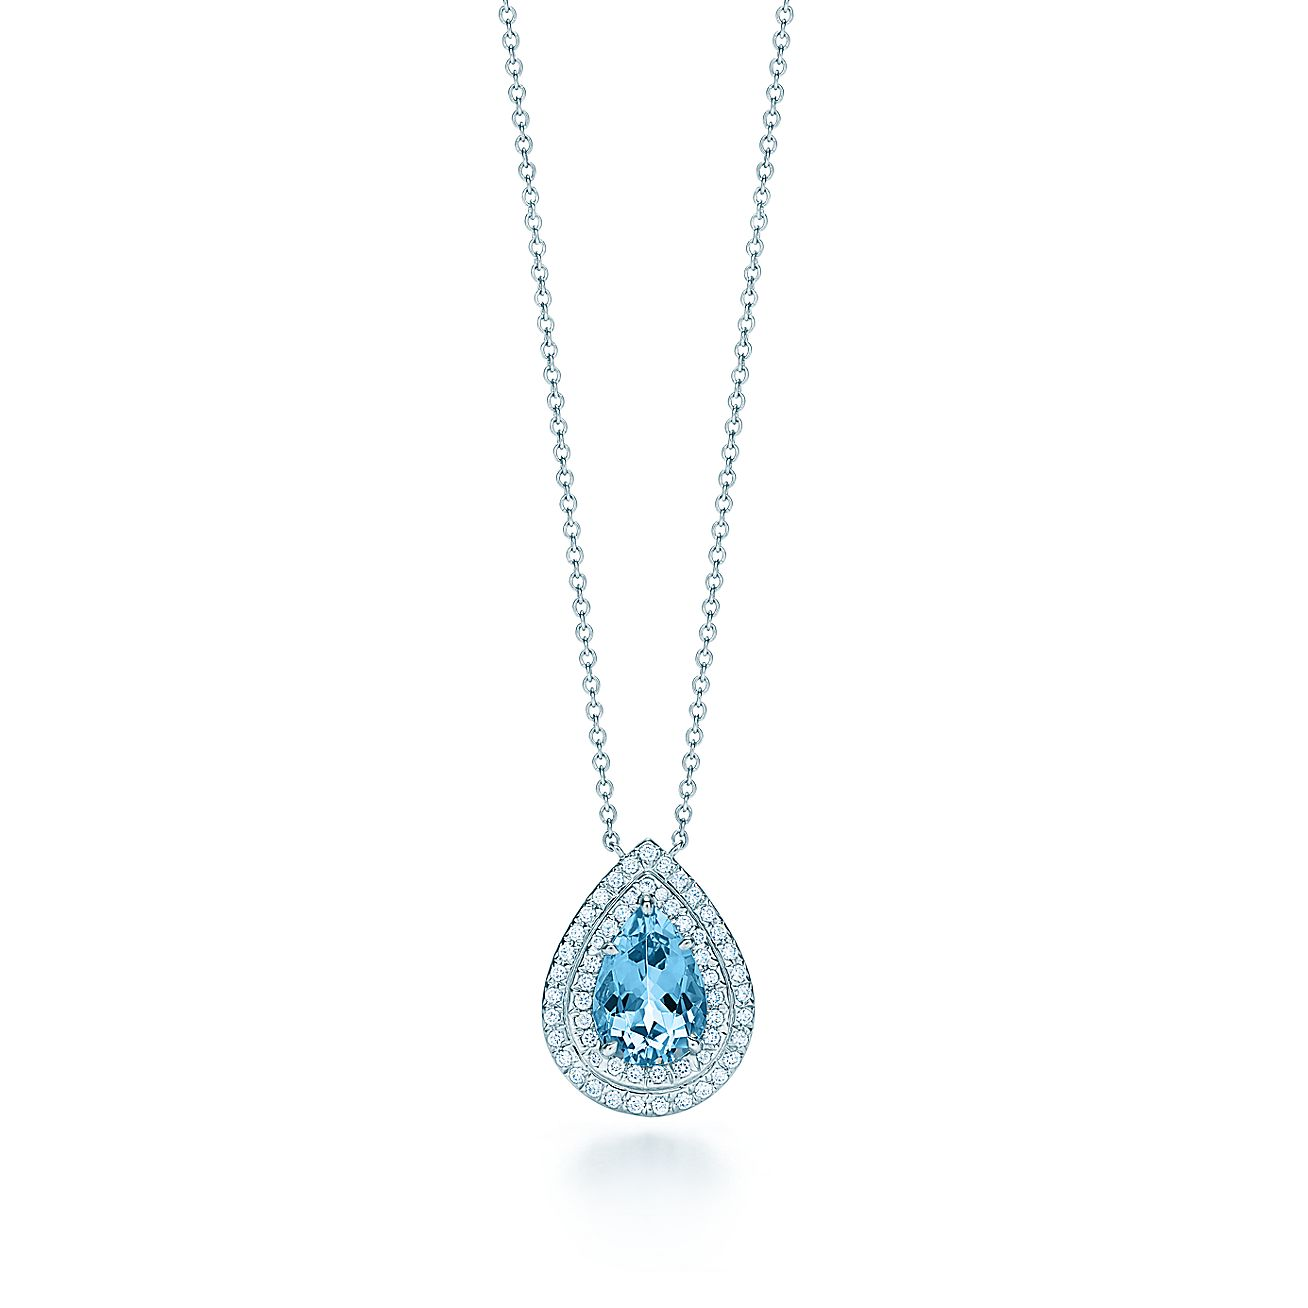 q halo marine aquamarine original pendant aqua birthstone necklace